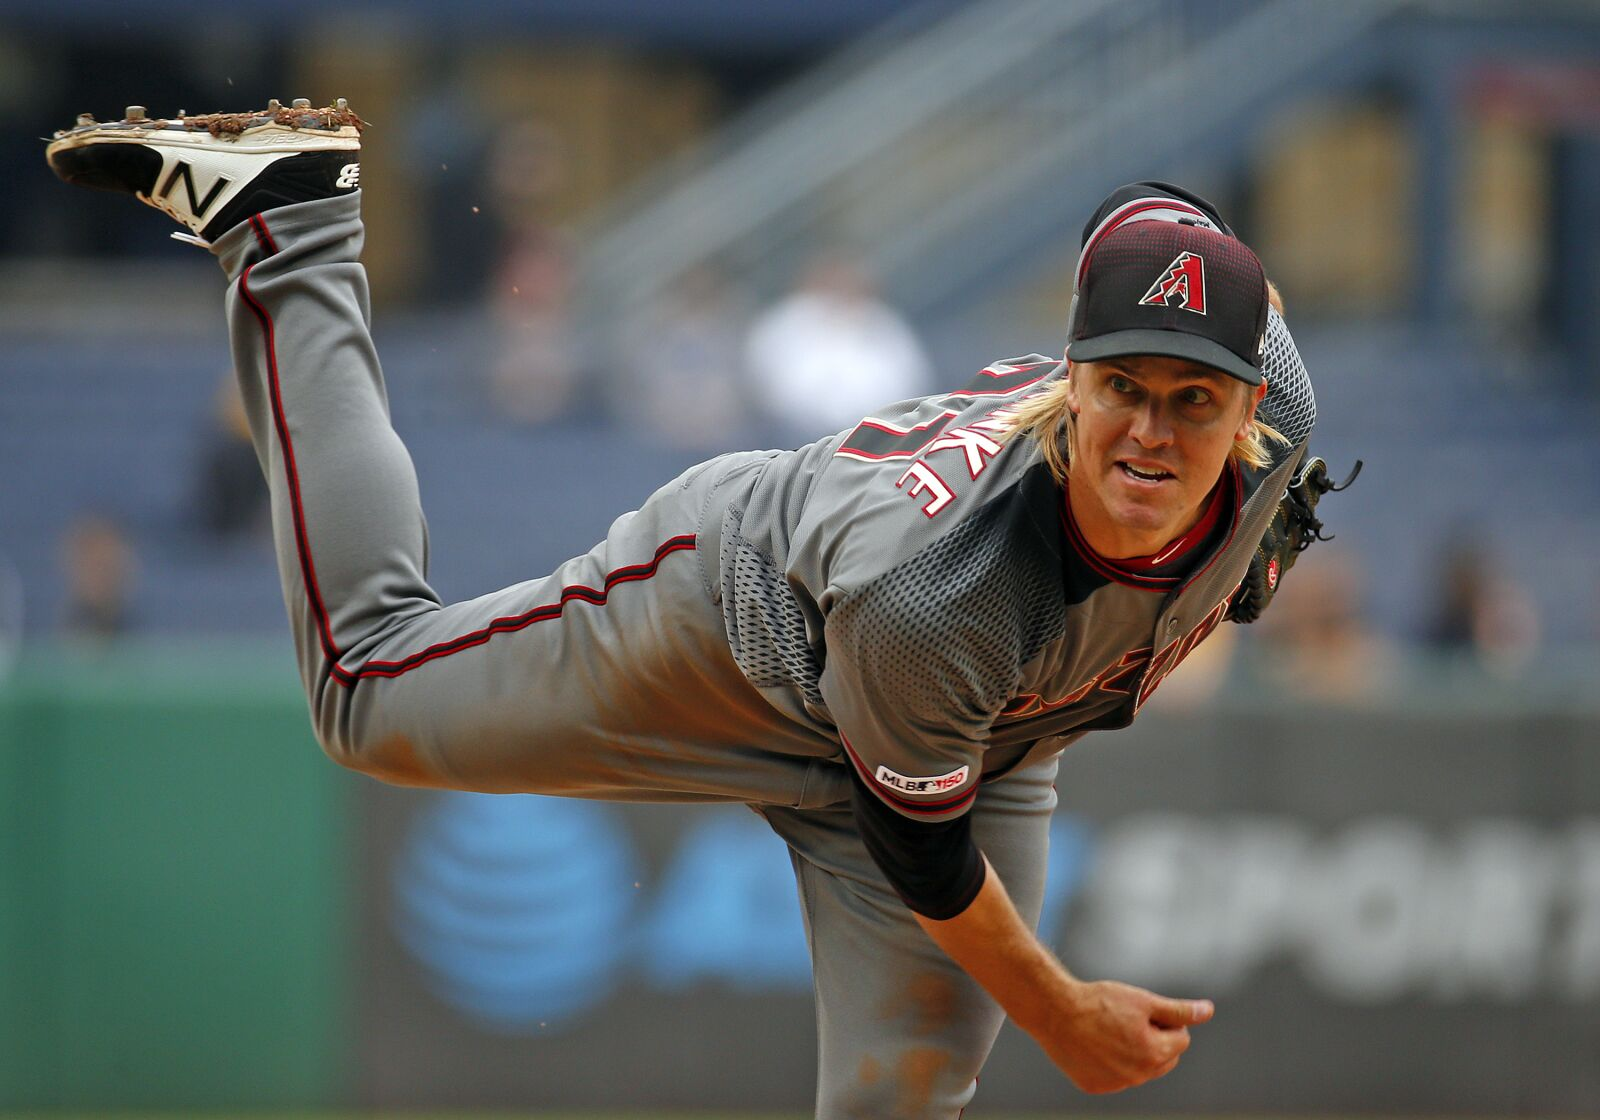 Astros: After 200 Wins, is Zack Greinke Building a Case for the Hall?